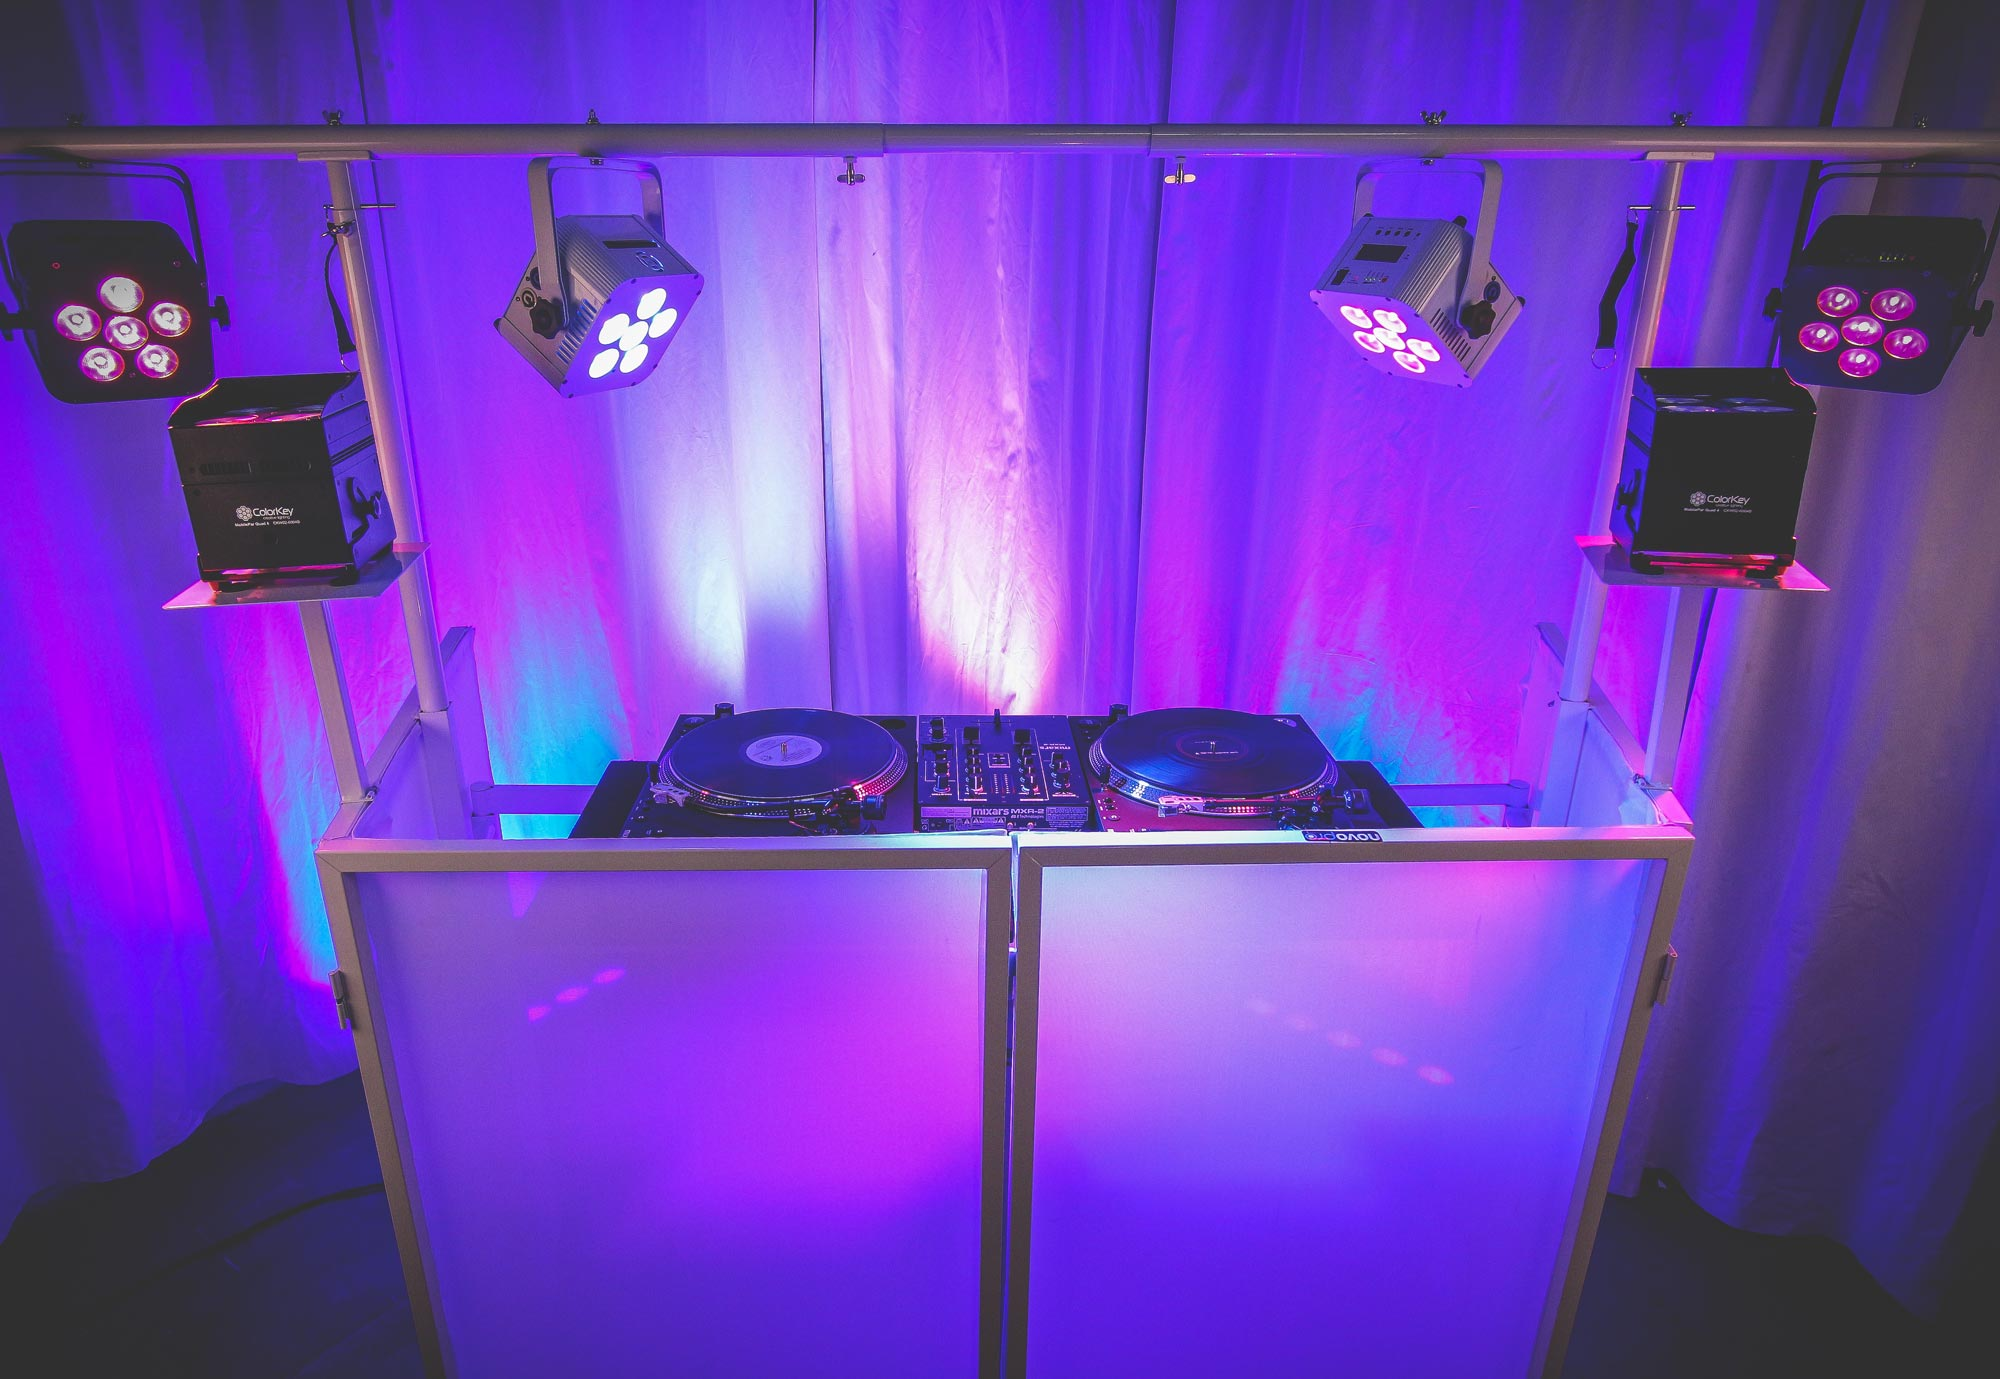 NOVOPRO SDX V2 Mobile DJ Booth - White Folding DJ Booth with Table Scrim and Lighting Bar : dj and lighting - www.canuckmediamonitor.org